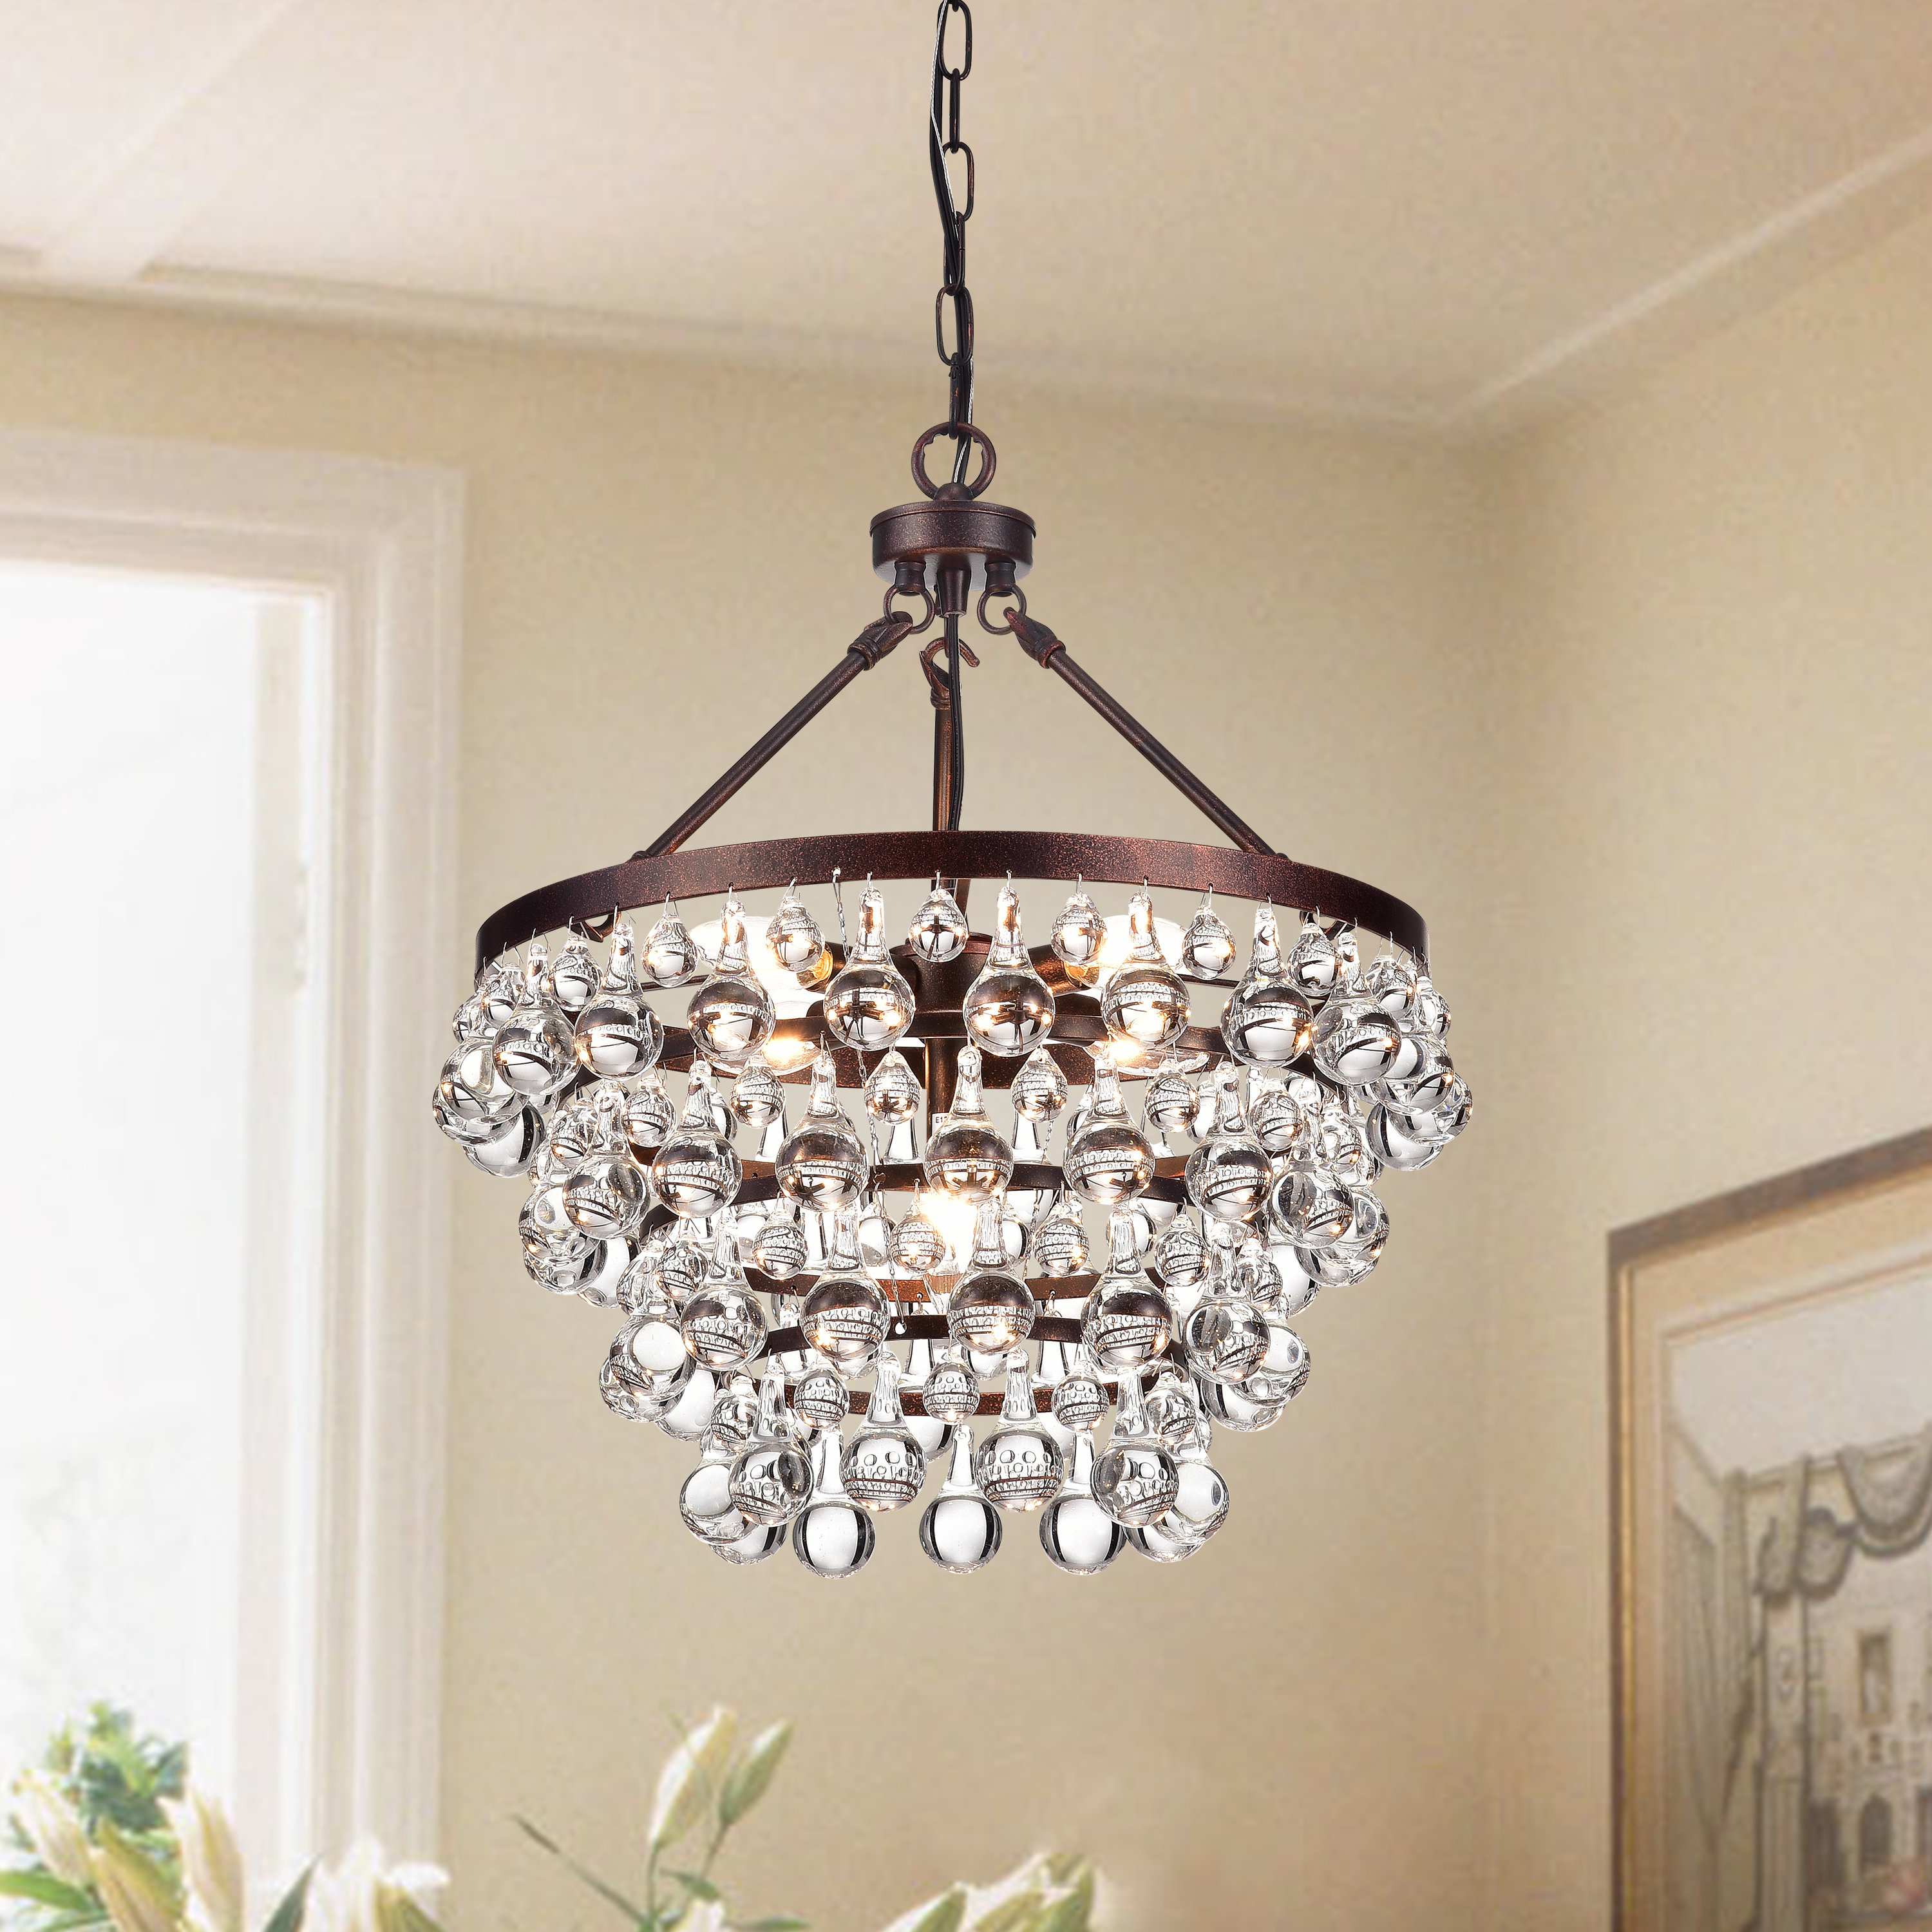 Giovanni 5 Light Crystal Chandelier With Regard To Bramers 6 Light Novelty Chandeliers (View 11 of 30)